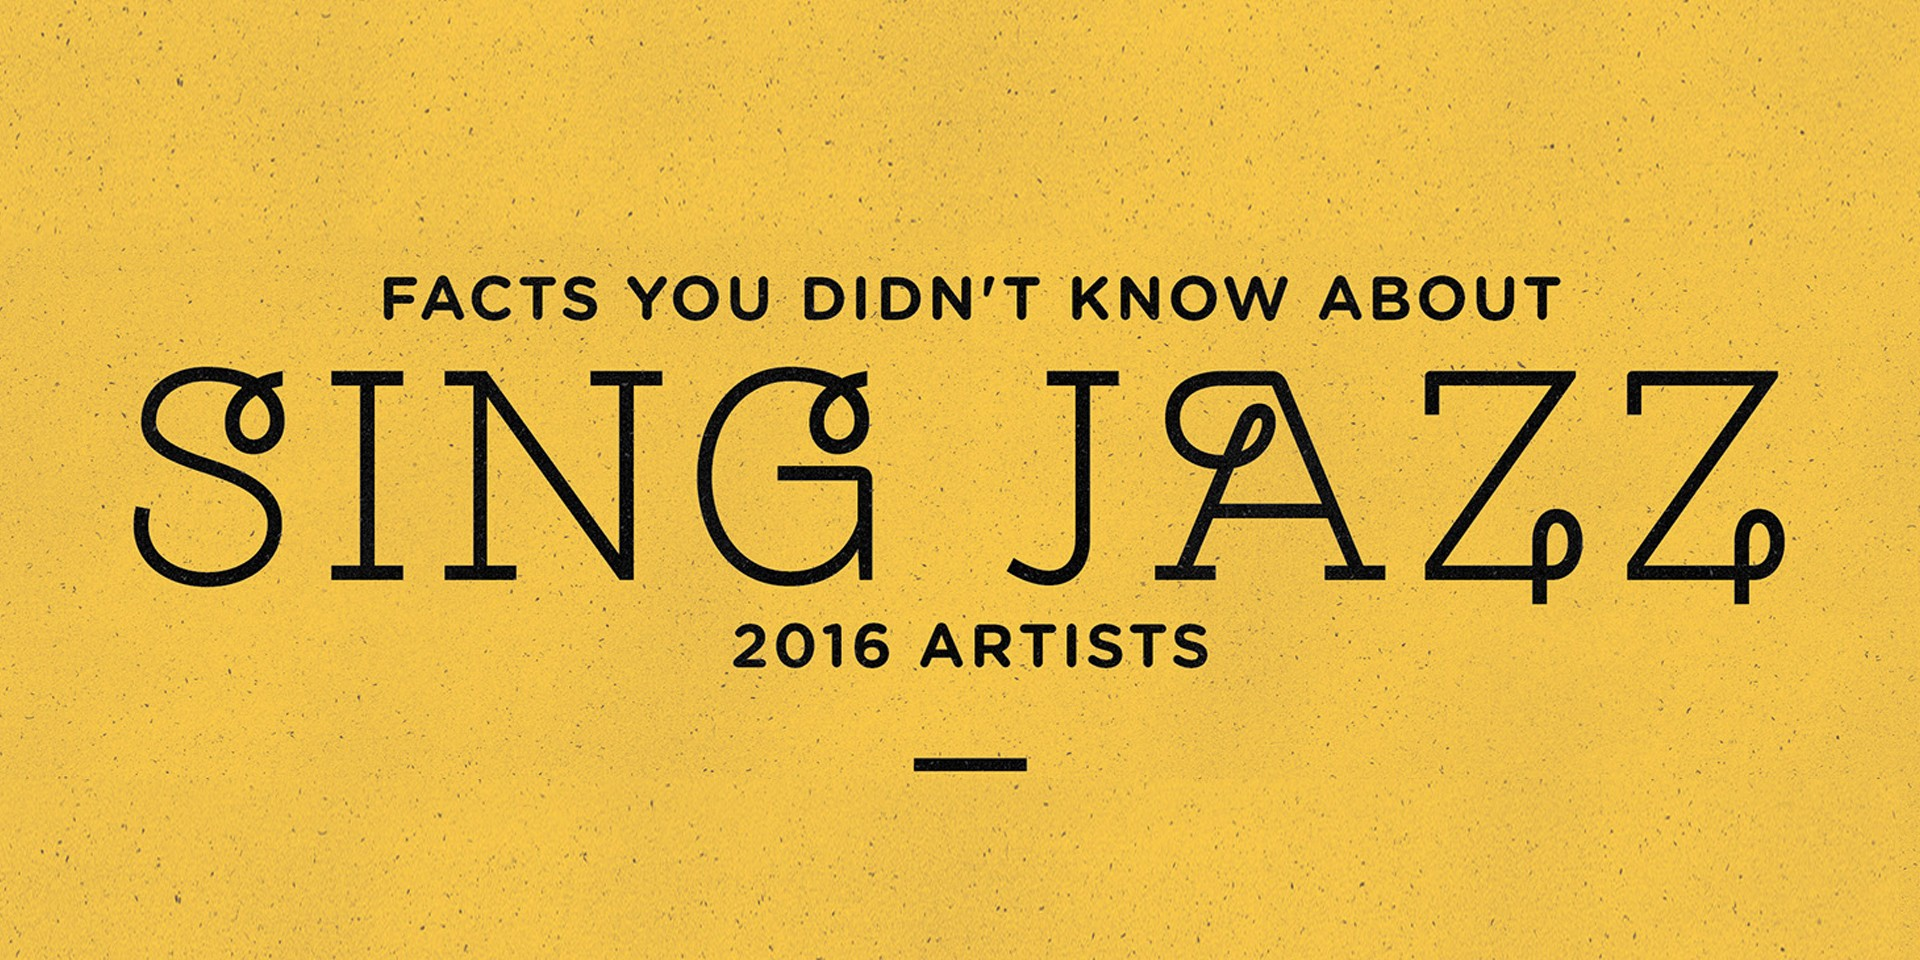 Facts you didn't know about Sing Jazz 2016 artists